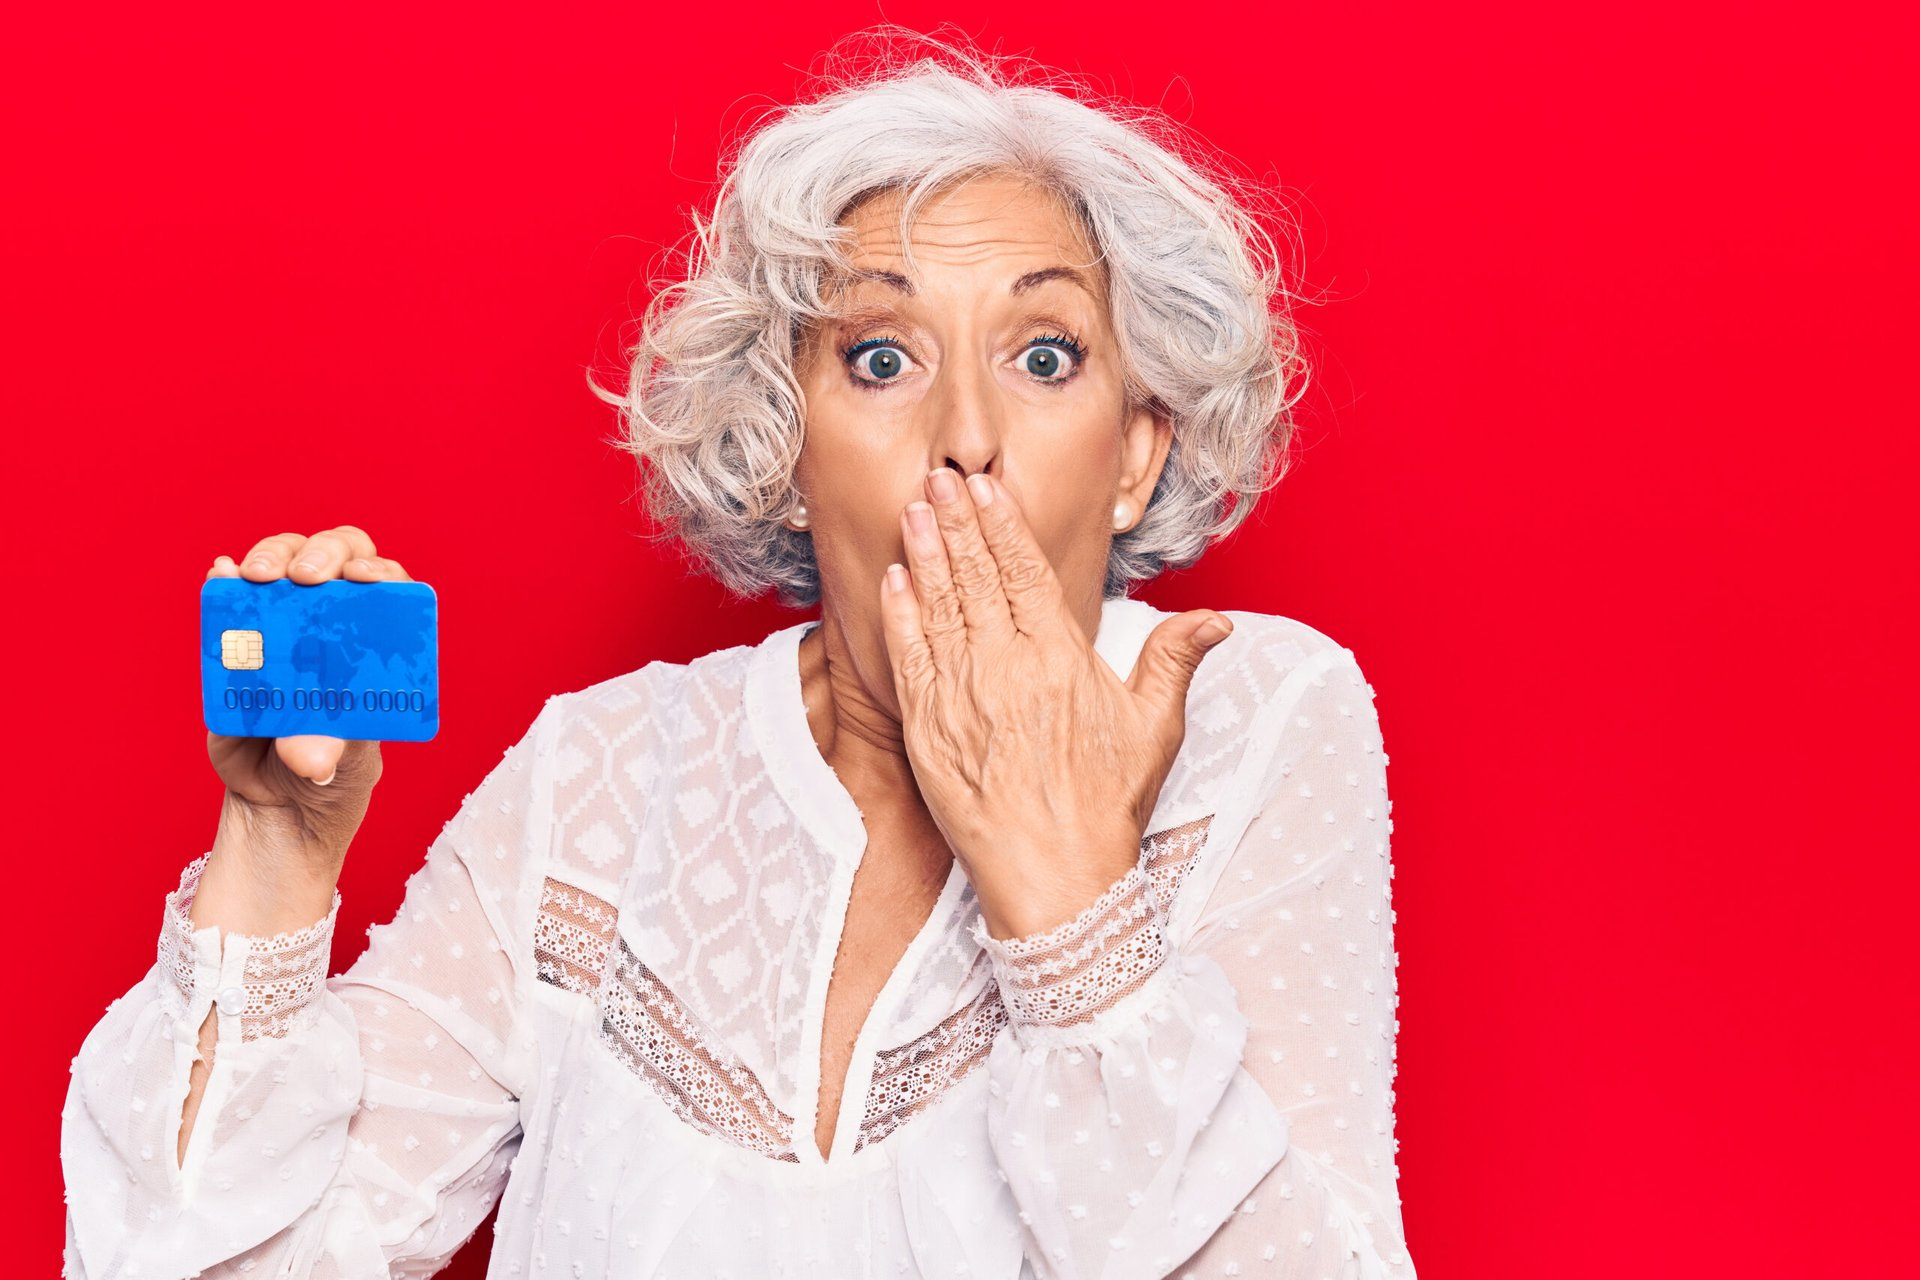 Surprised senior woman holding credit card